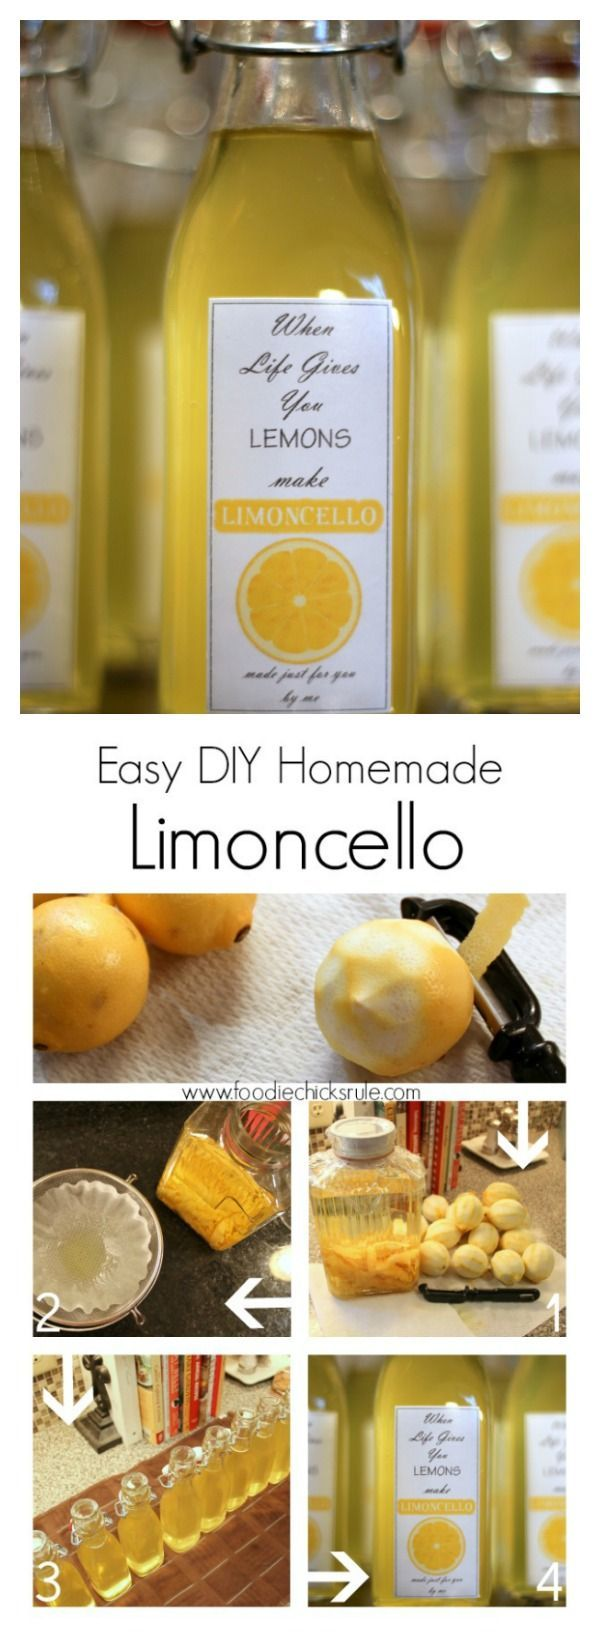 I can't believe how simple it really is!! Love this stuff!! http://foodiechicksrule.com